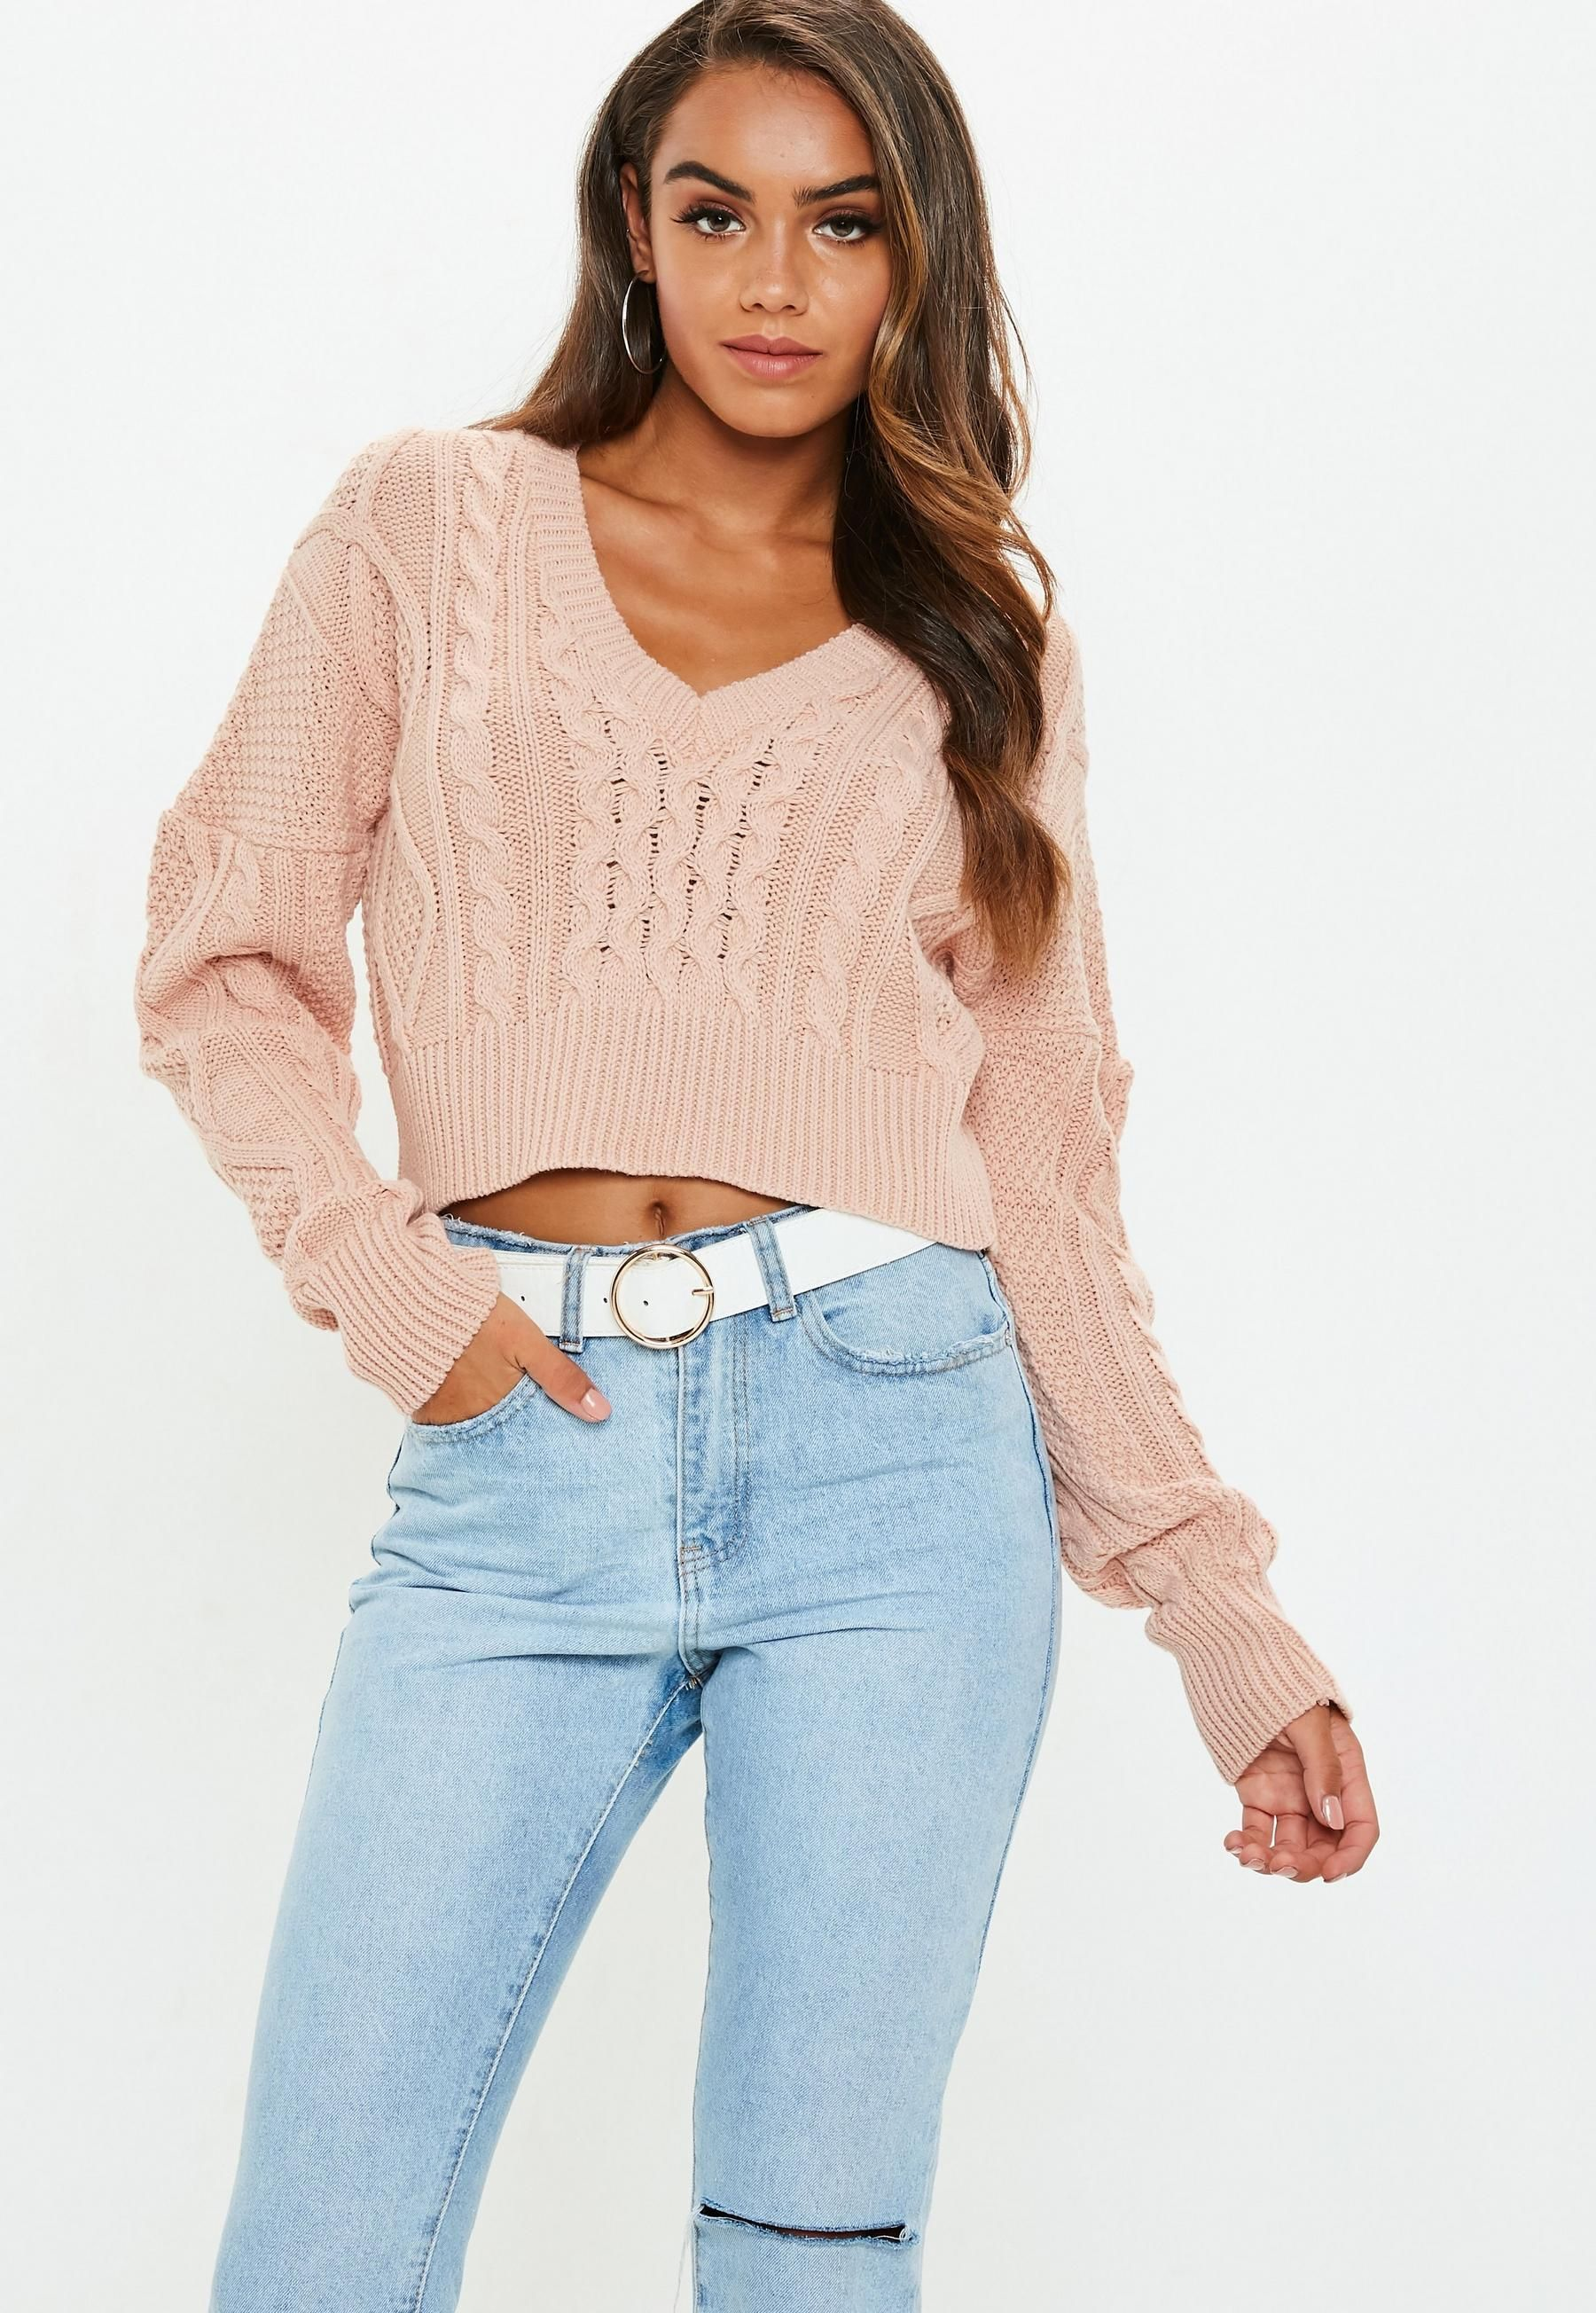 WOMENS LADIES STRETCH HIGH POLO NECK CABLE KNIT CROPPED JUMPER KNITTED CROP TOP